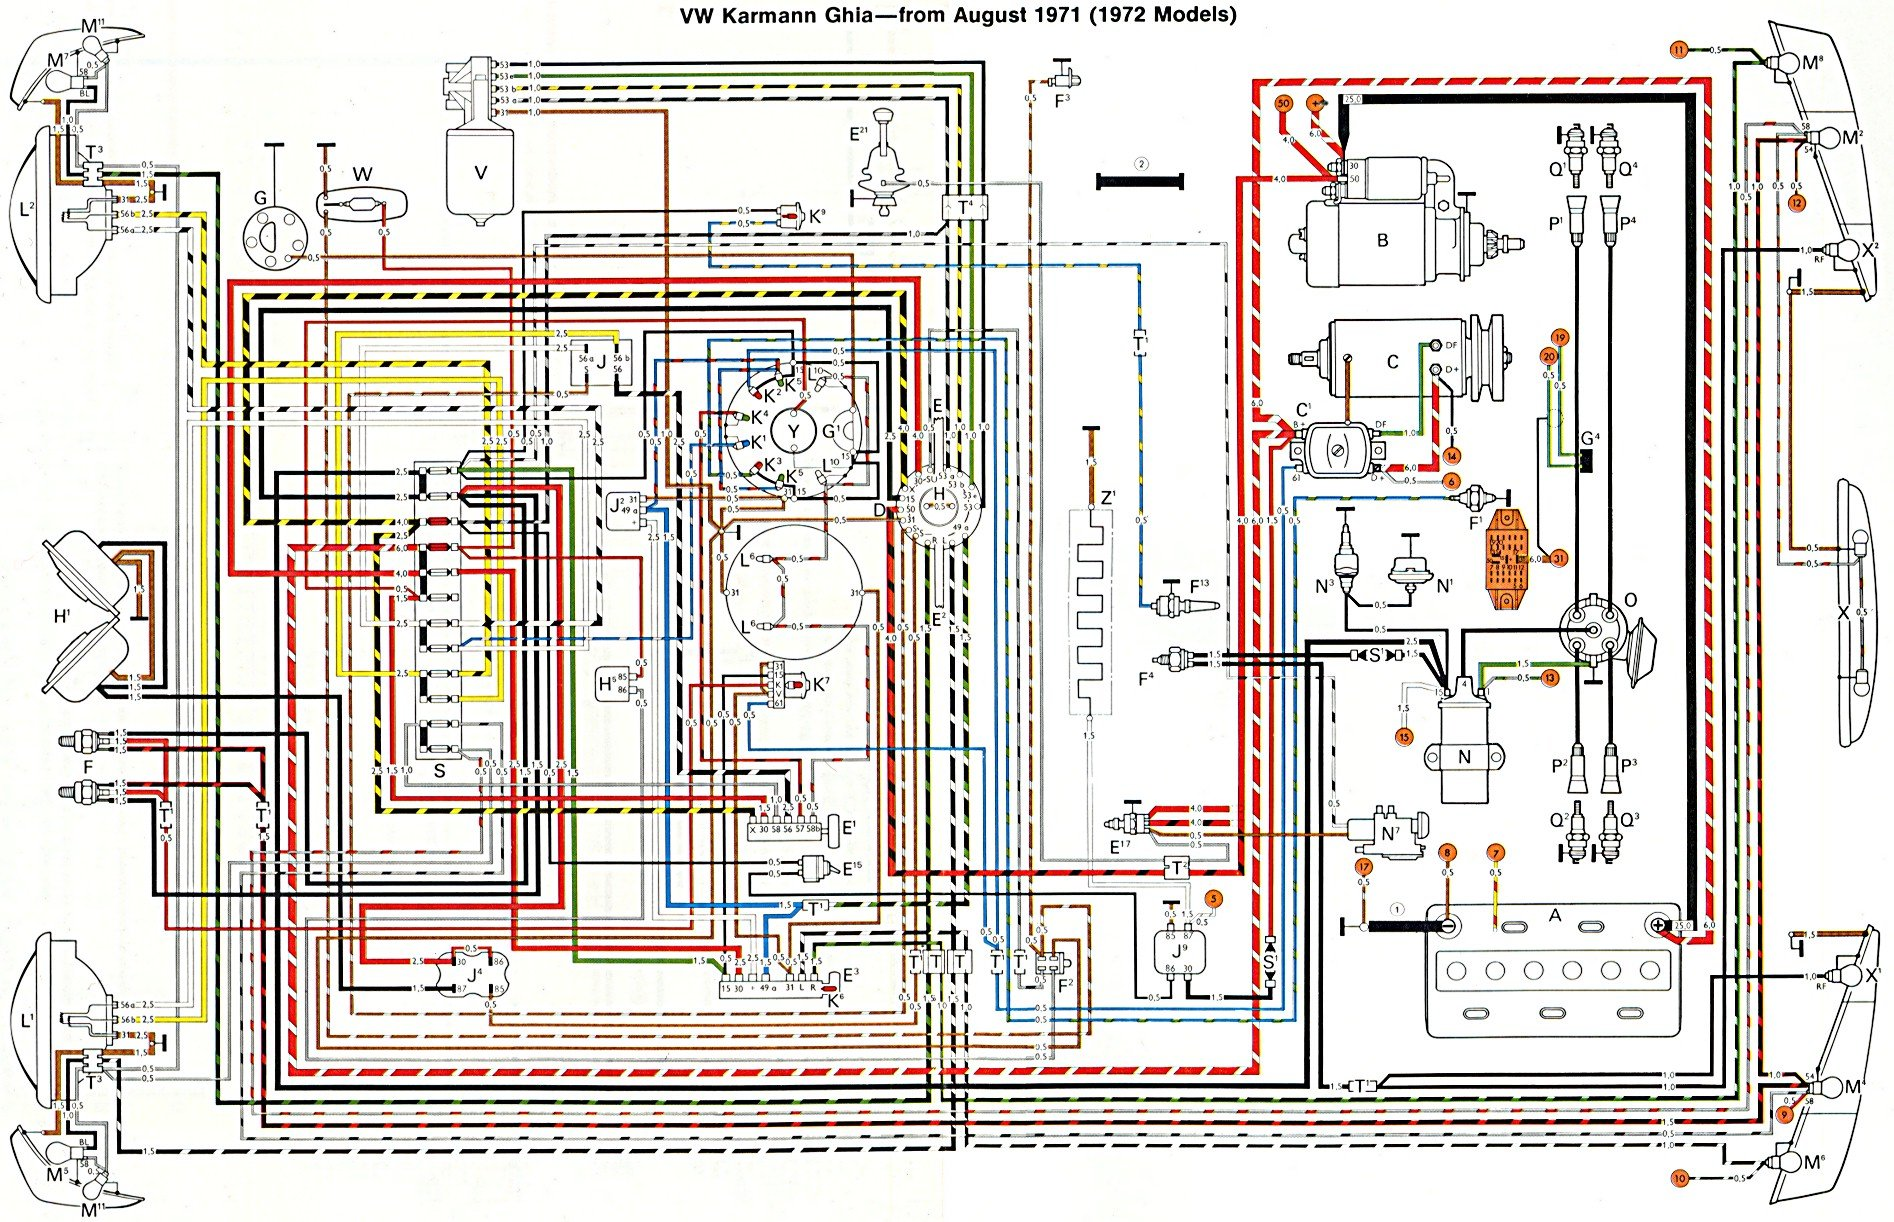 thesamba com karmann ghia wiring diagrams 1987 Camaro Fuse Block Diagram 91 Camaro Fuse Box Diagram